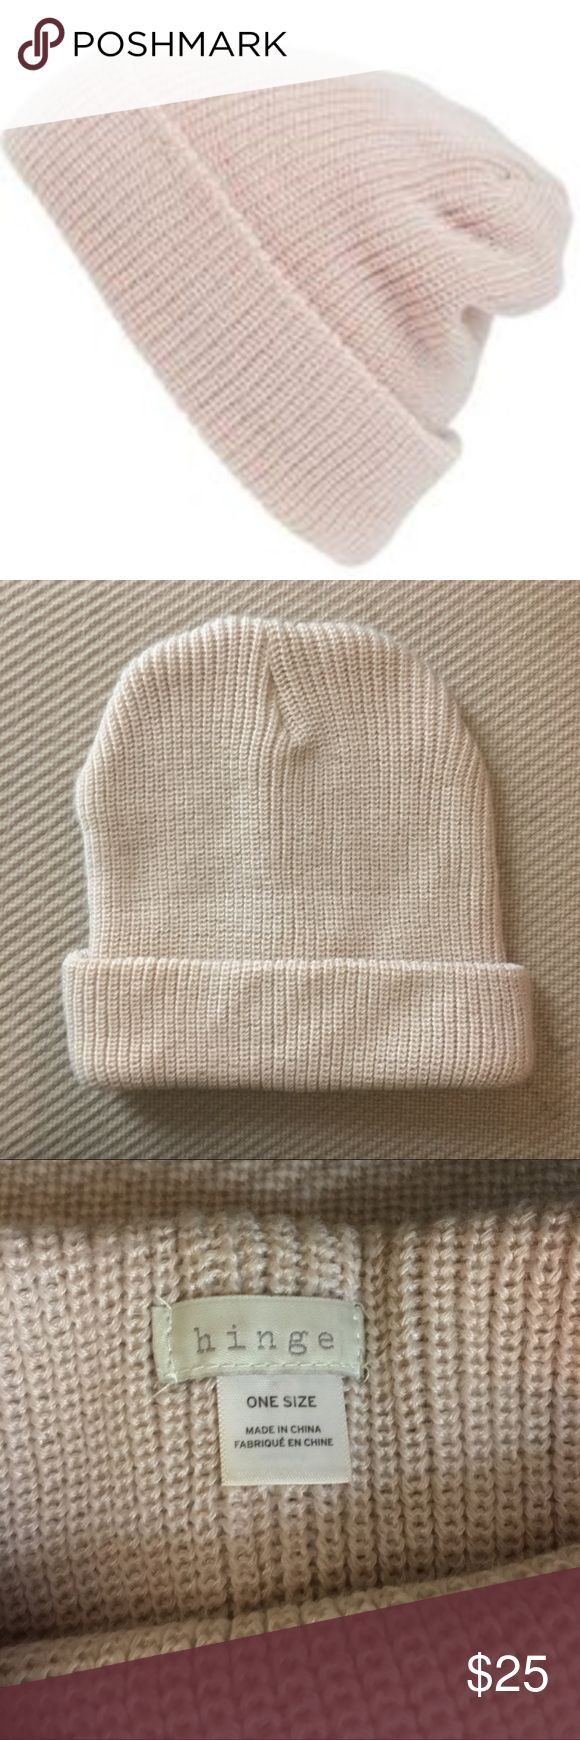 Hinge Blush Pink Beanie Blush/light pink knit beanie from Hinge (Nordstrom). One size. Excellent condition, no flaws! Nordstrom Accessories Hats